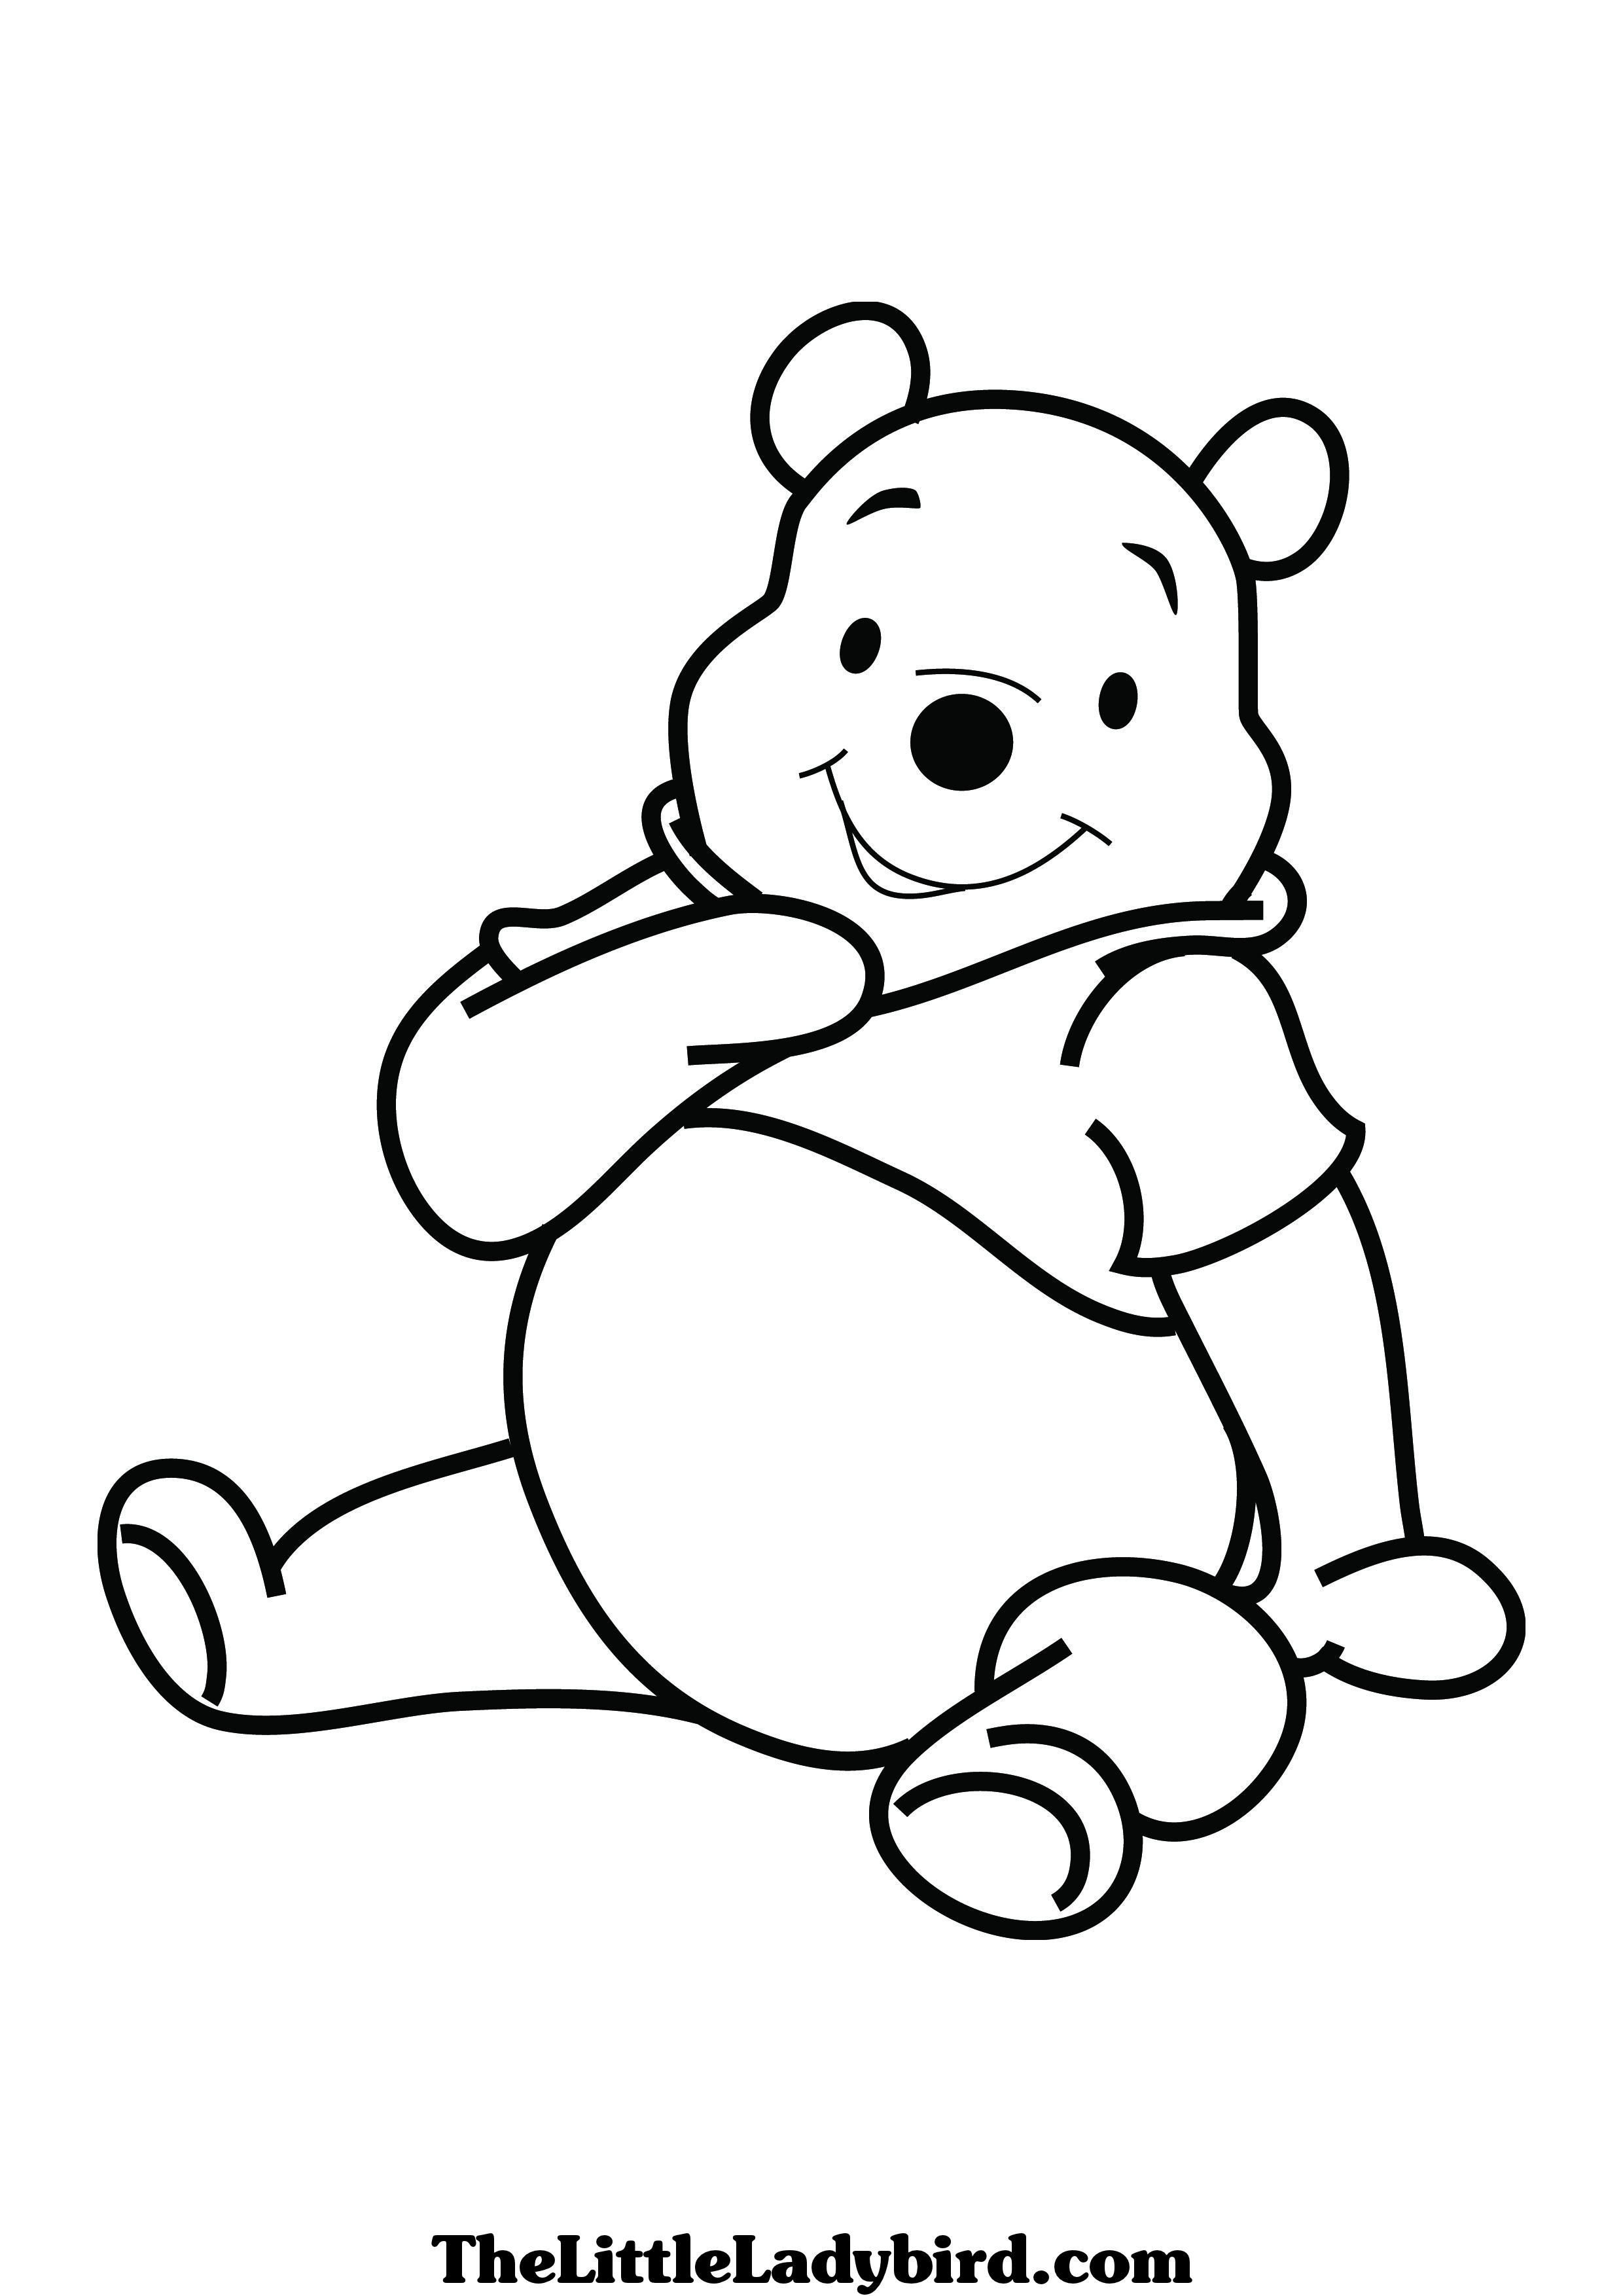 Pooh Bear Pictures Free | Free download on ClipArtMag